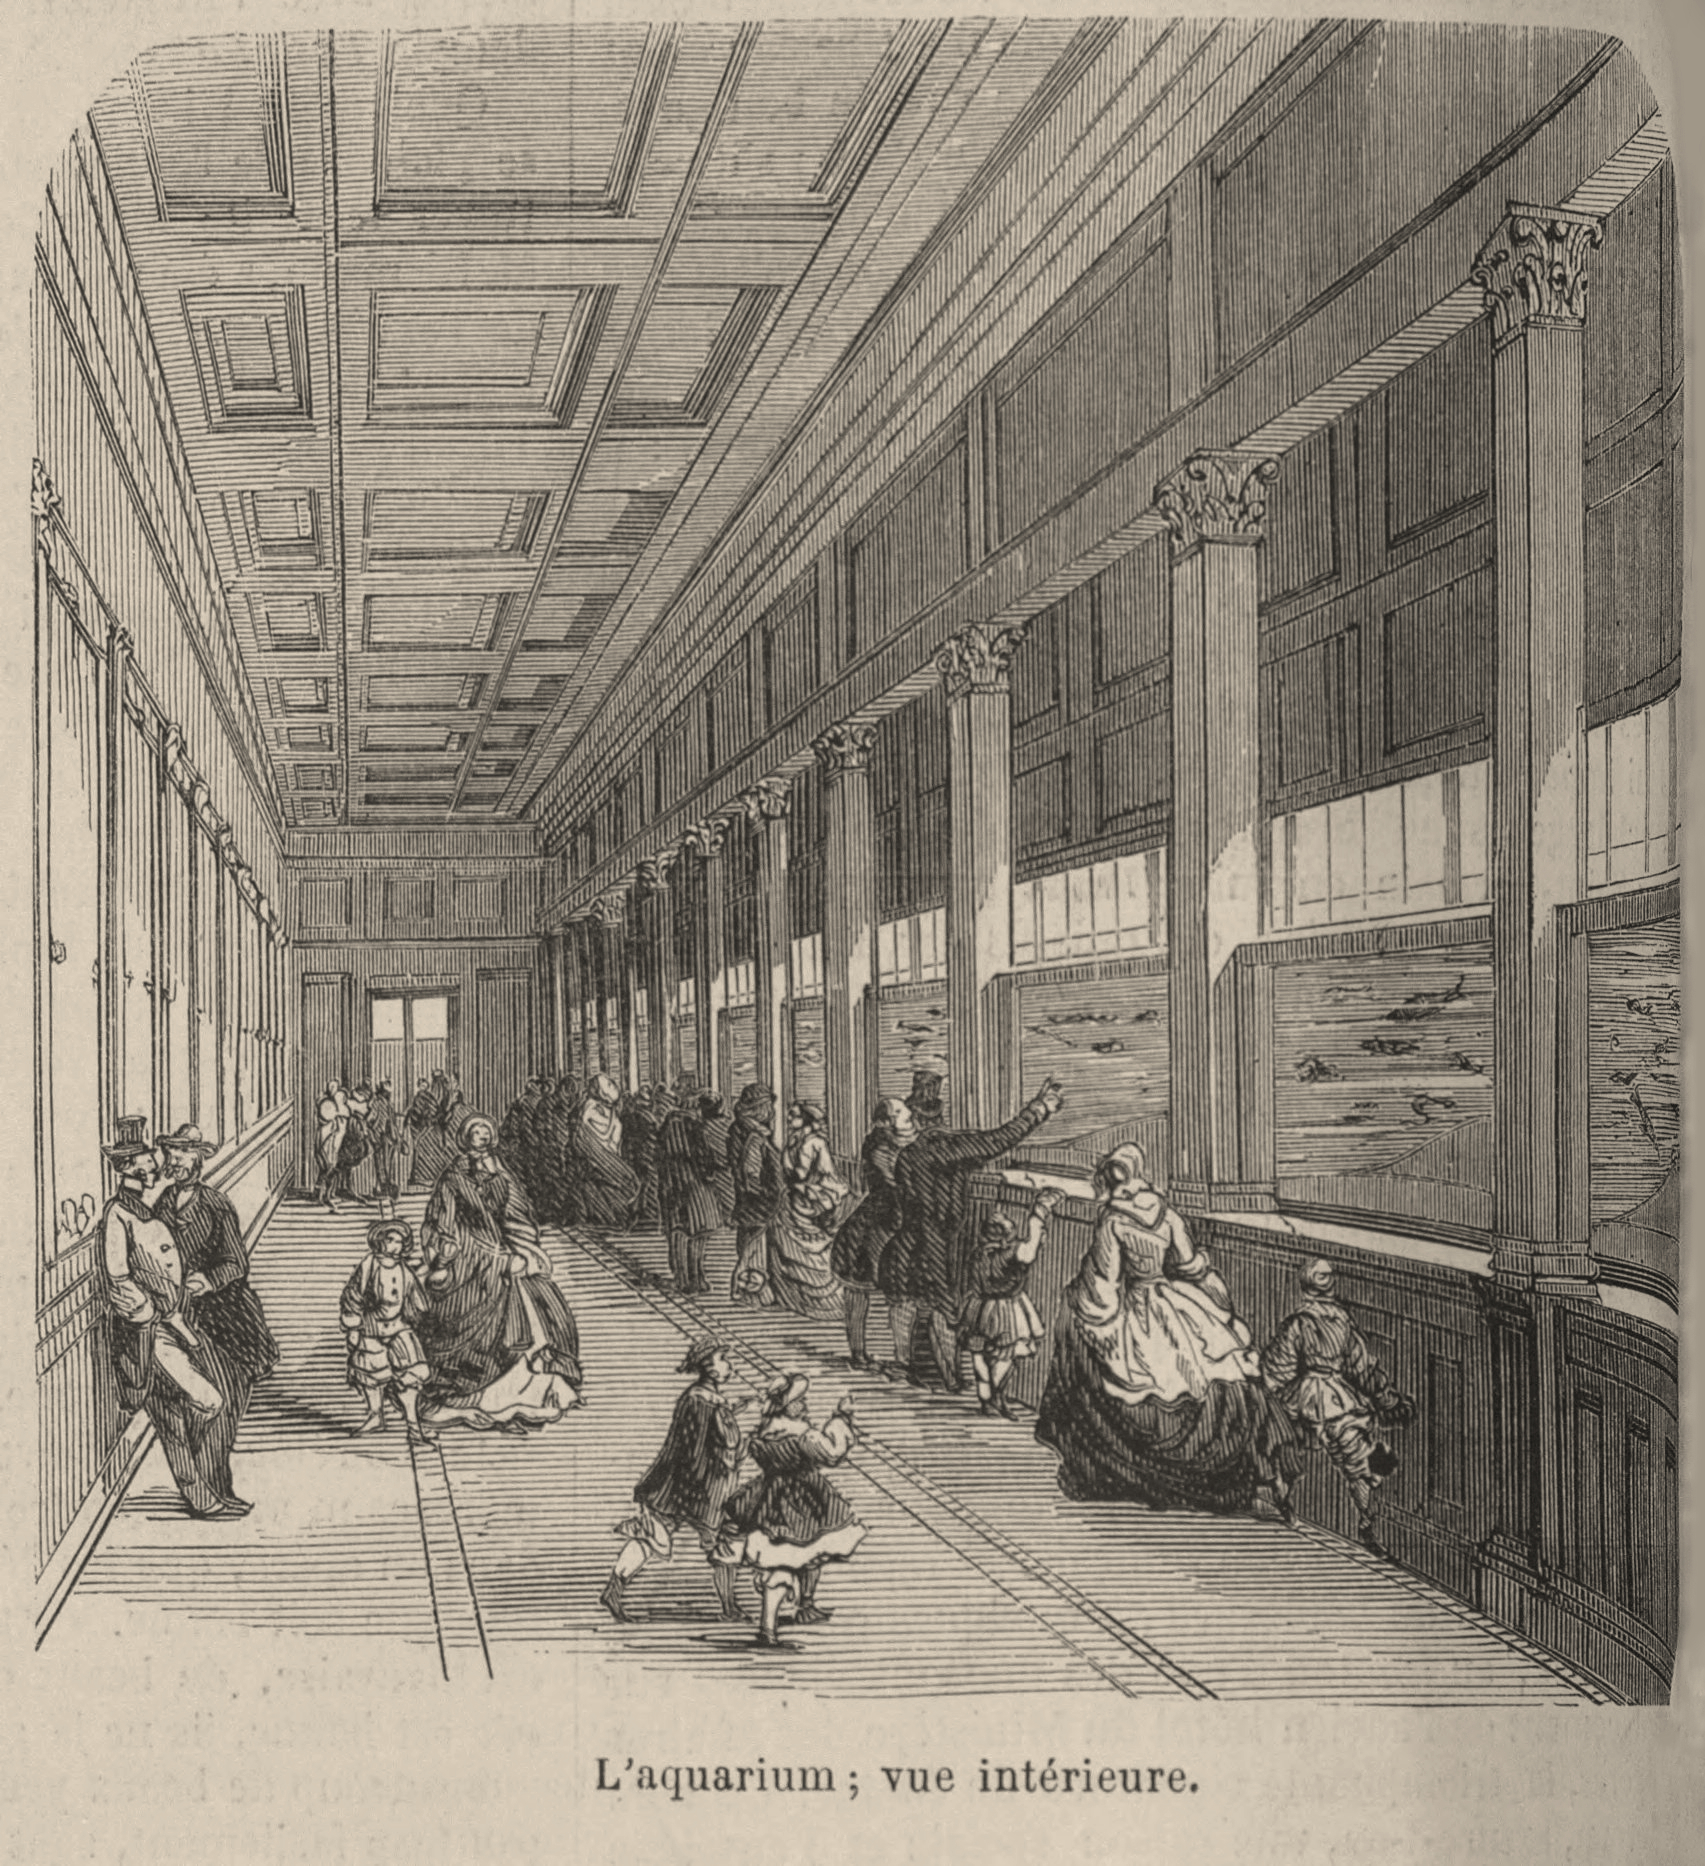 Fish aquarium wiki - The Jardin Zoologique At The Bois De Boulogne Included An Aquarium That Housed Both Fresh And Saltwater Animals 1860 In Paris